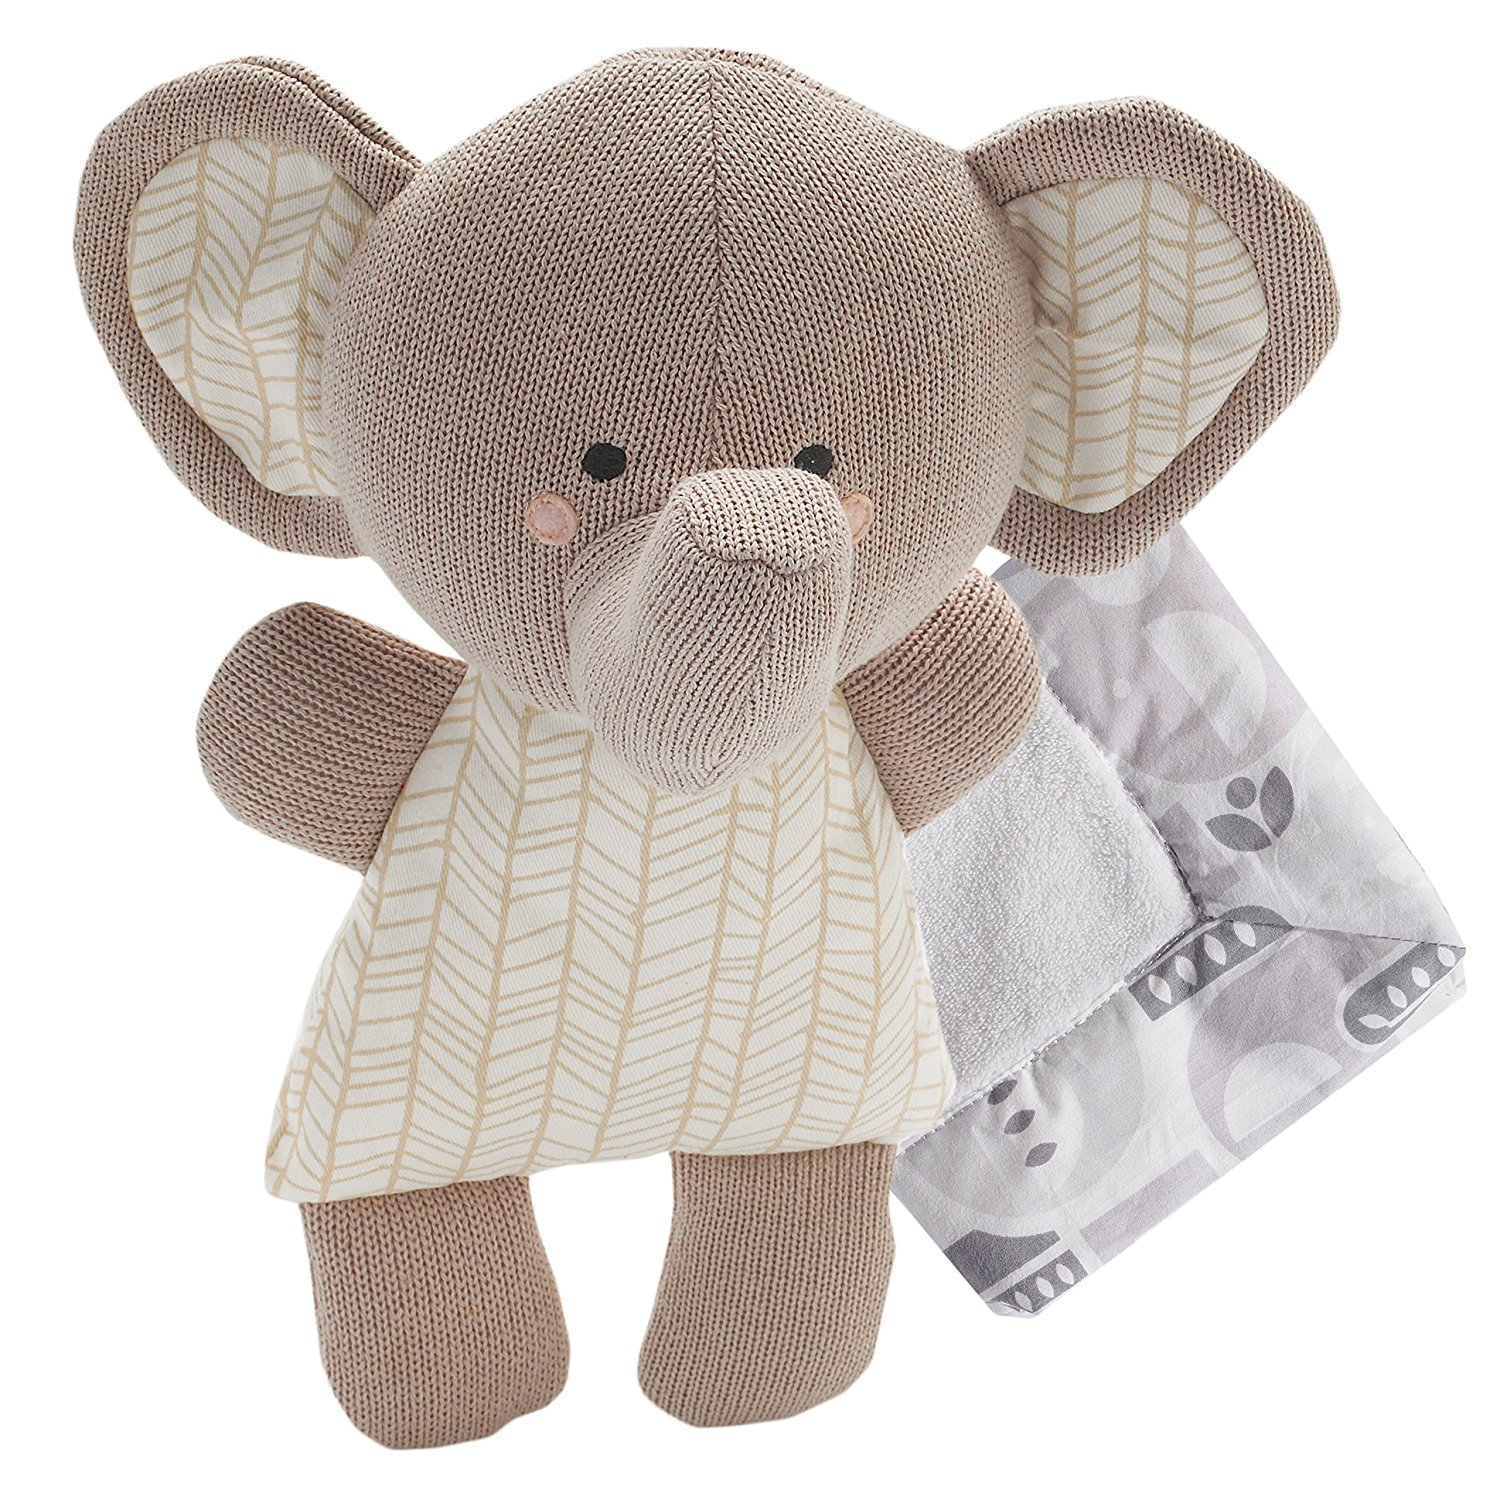 Softie Plush & Blanket - Emmerson Elephant (Knit) - Cotton Stuffed Animal And Security Blanket Set, Soft &Comforting For Babies,.., By Lolli Living Ship from US